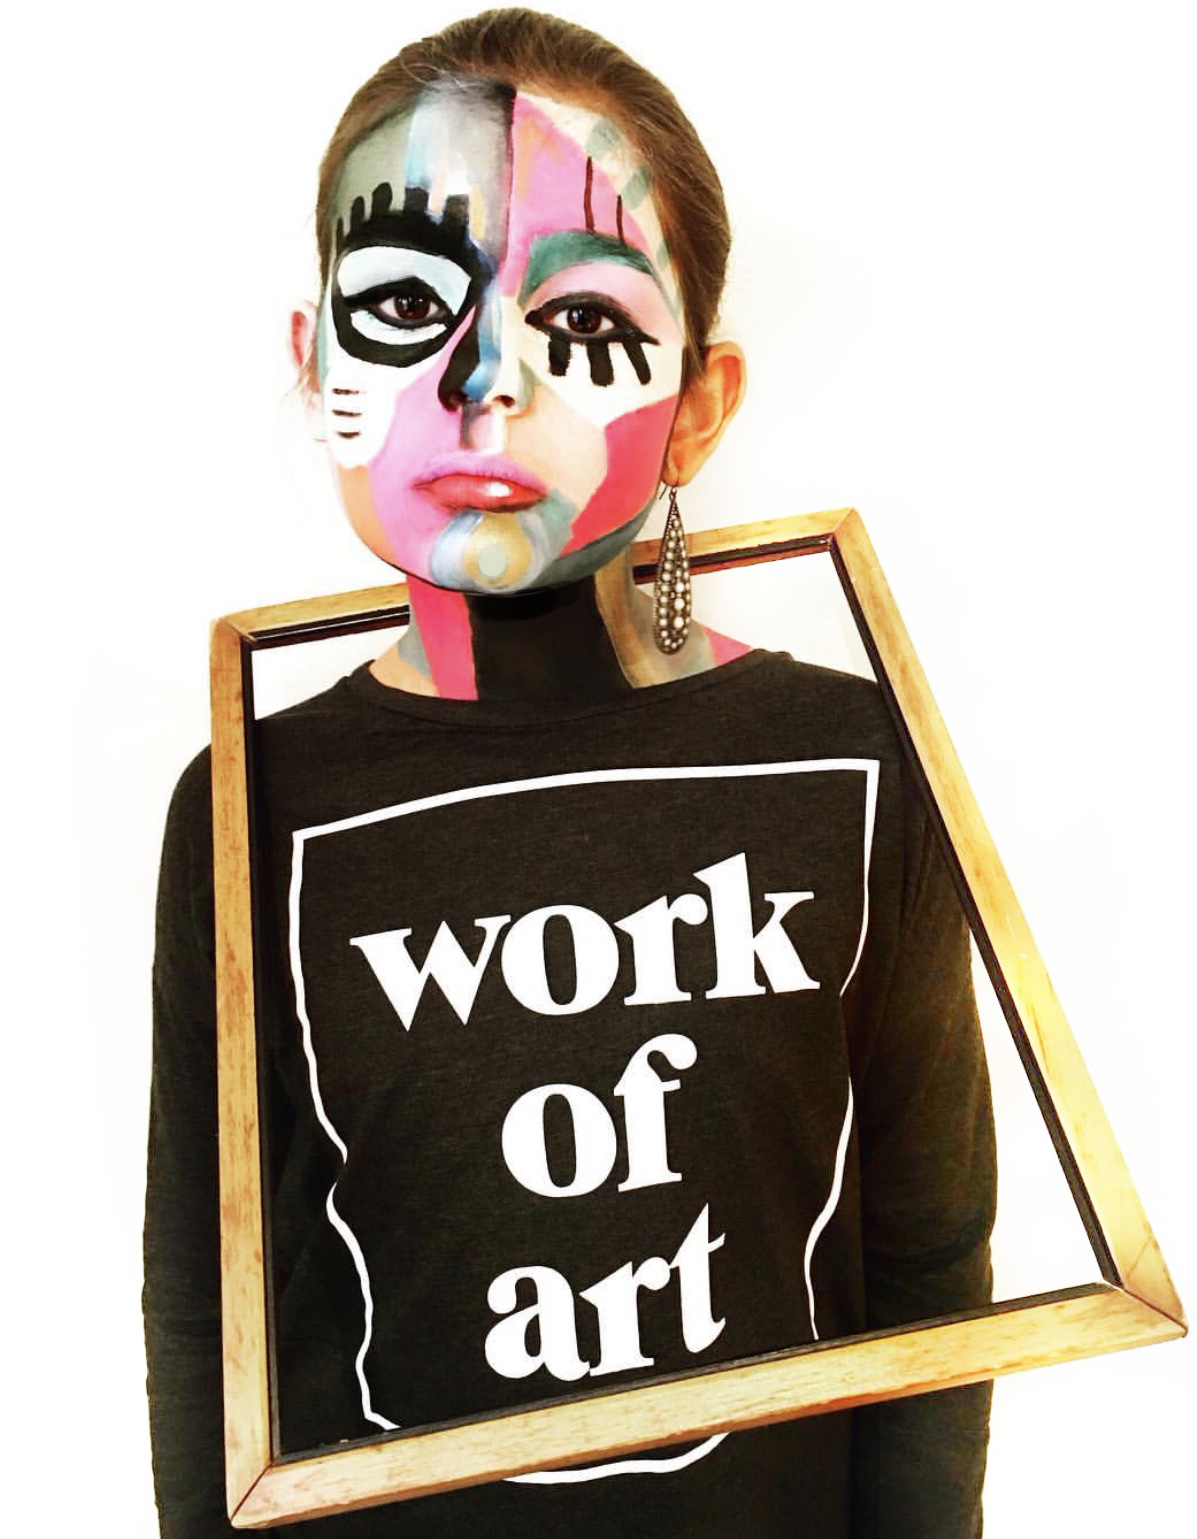 ARTIST + WORK OF ART COSTUME